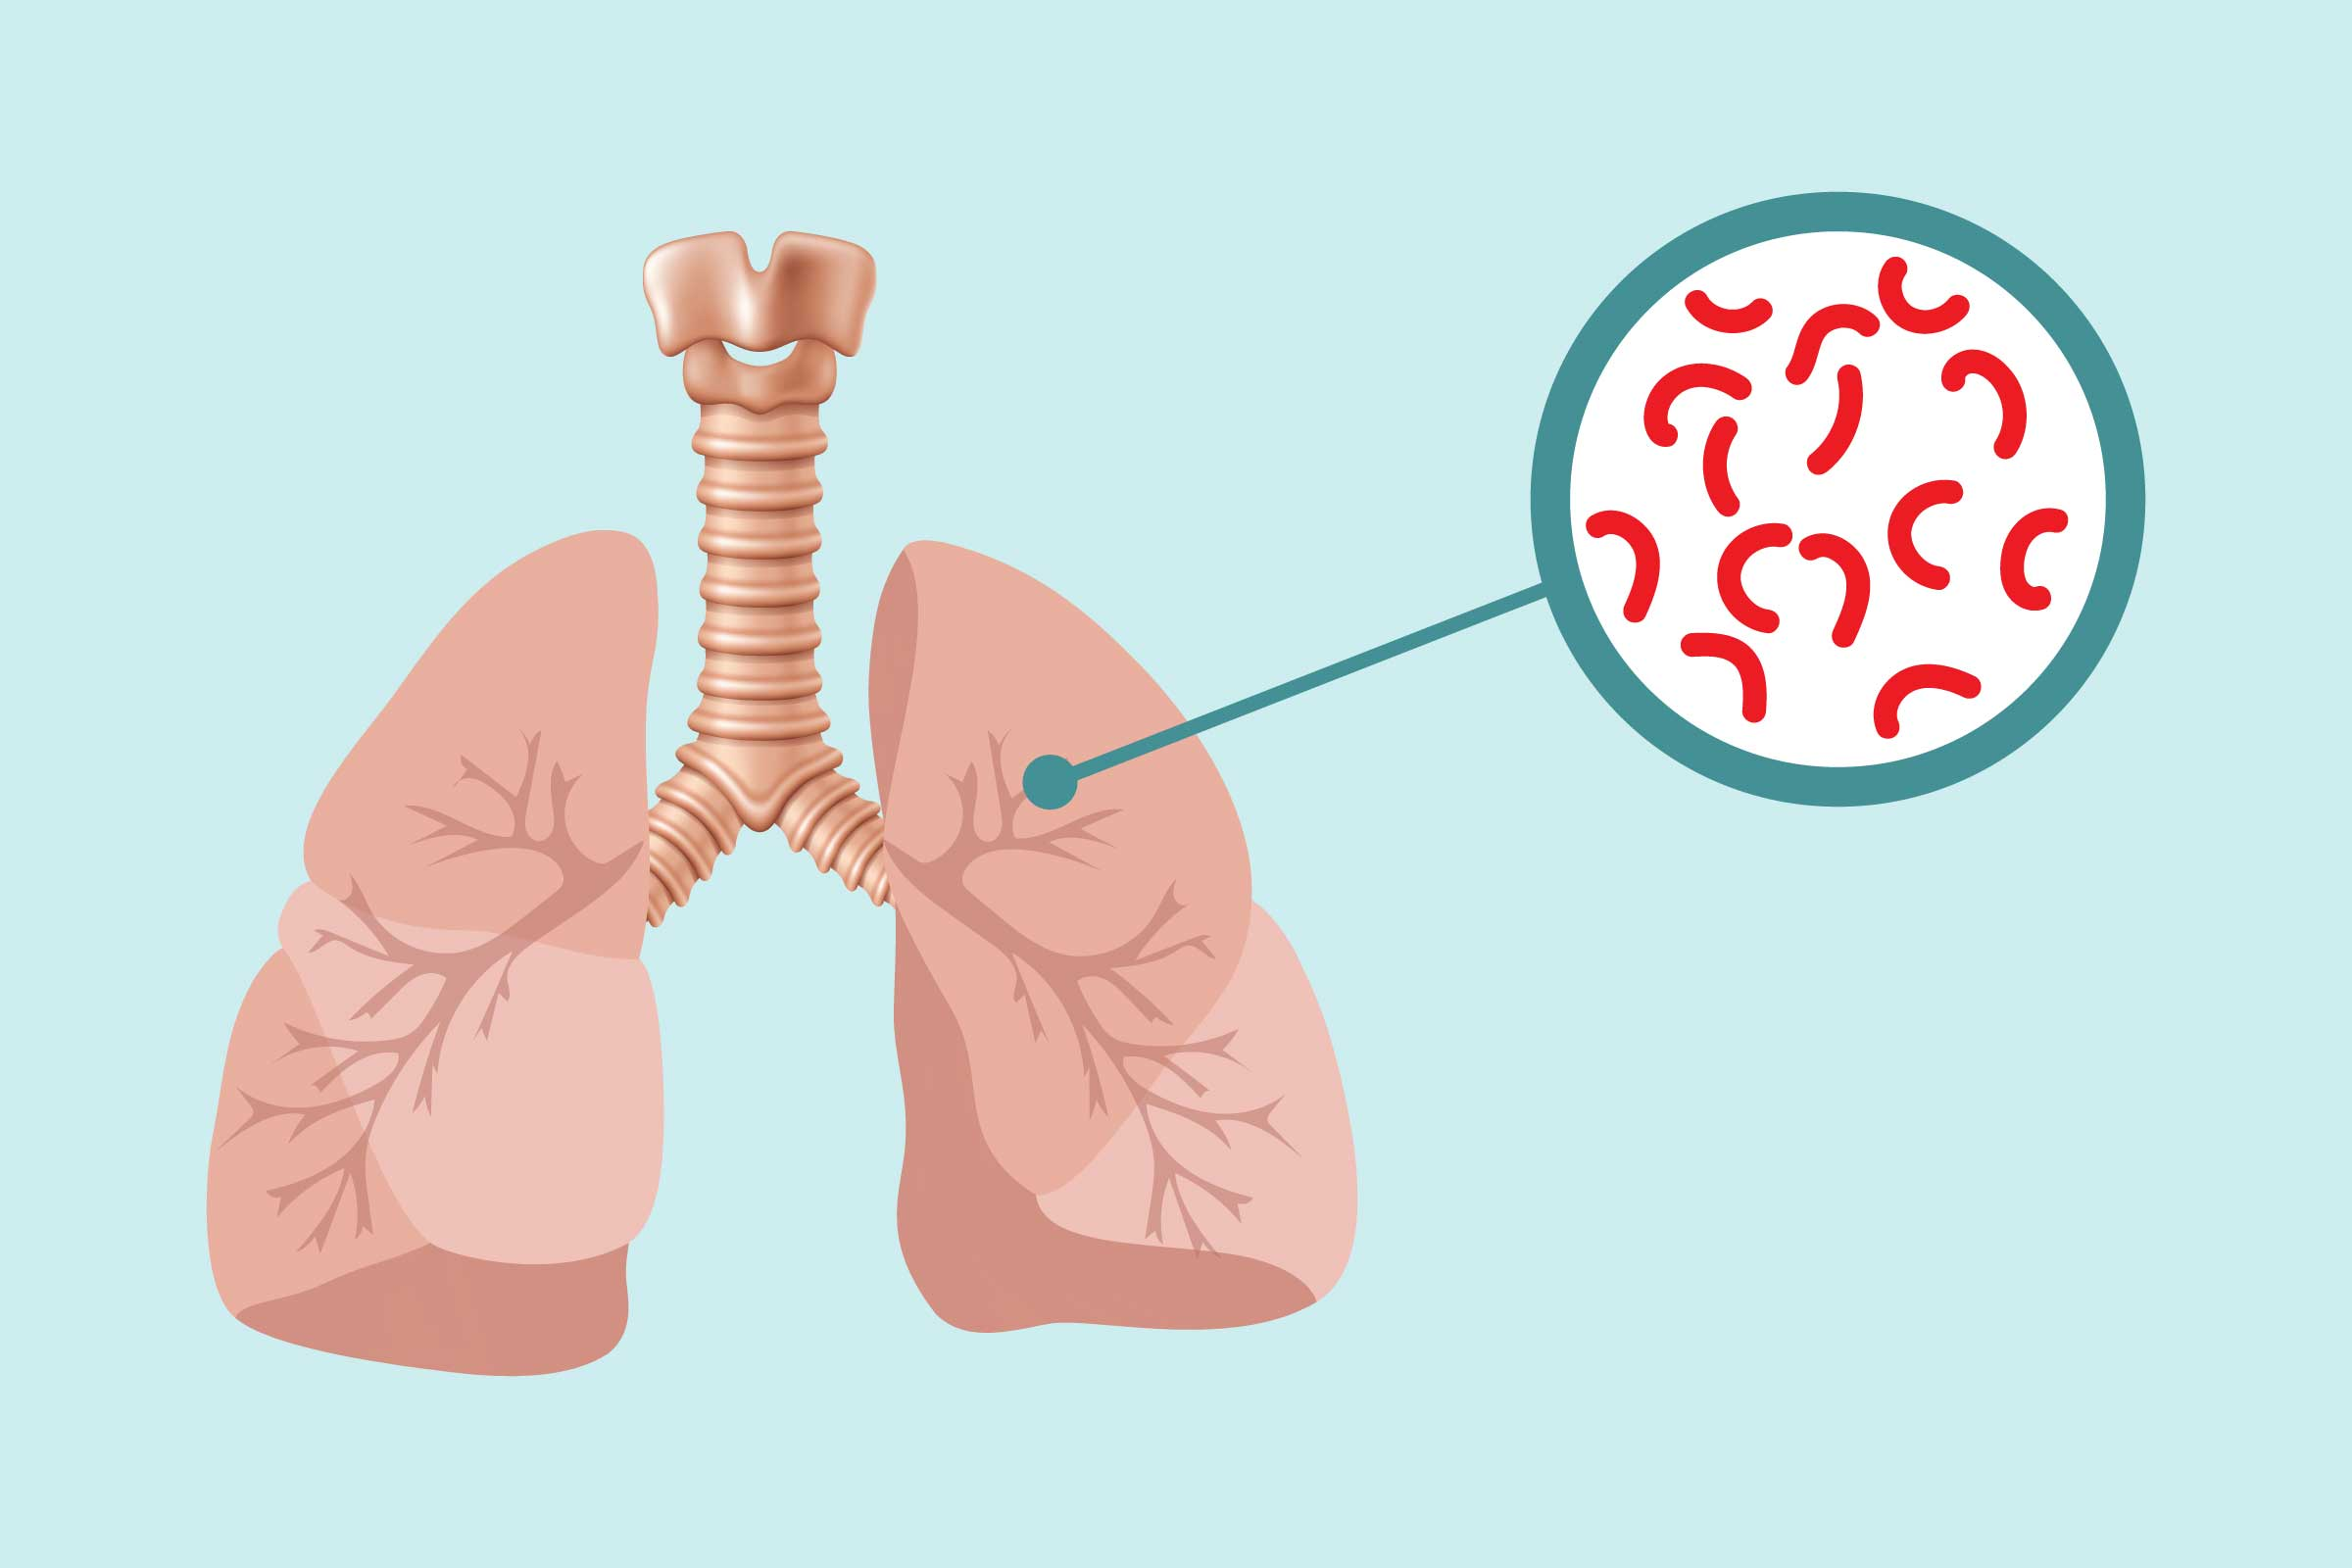 Lungs clipart tb patient, Lungs tb patient Transparent FREE.